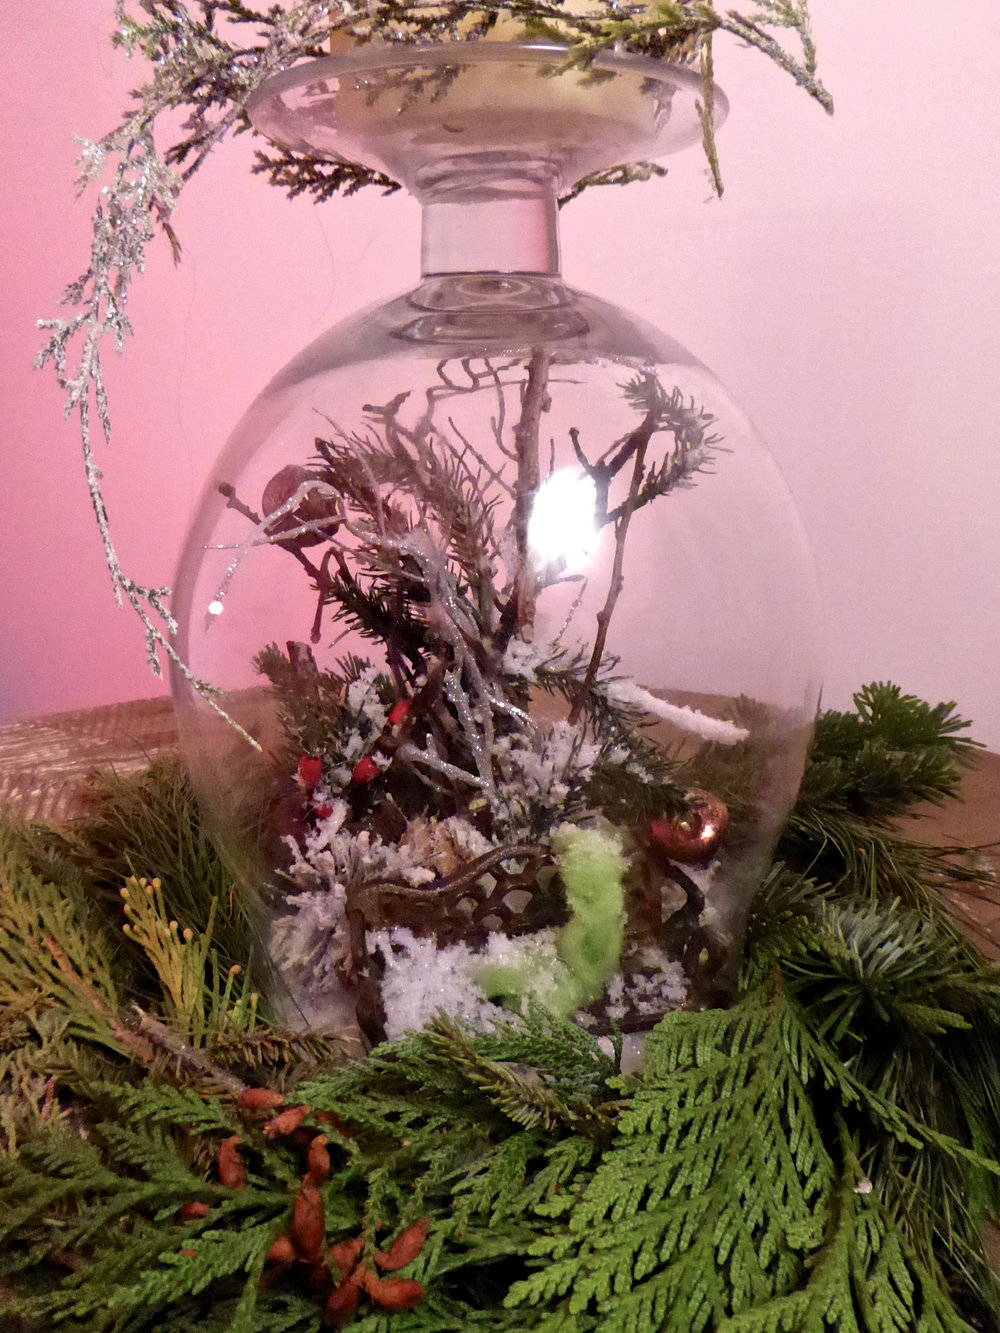 ardith_christmas_fairygarden_spiritedtable_photo1.jpg